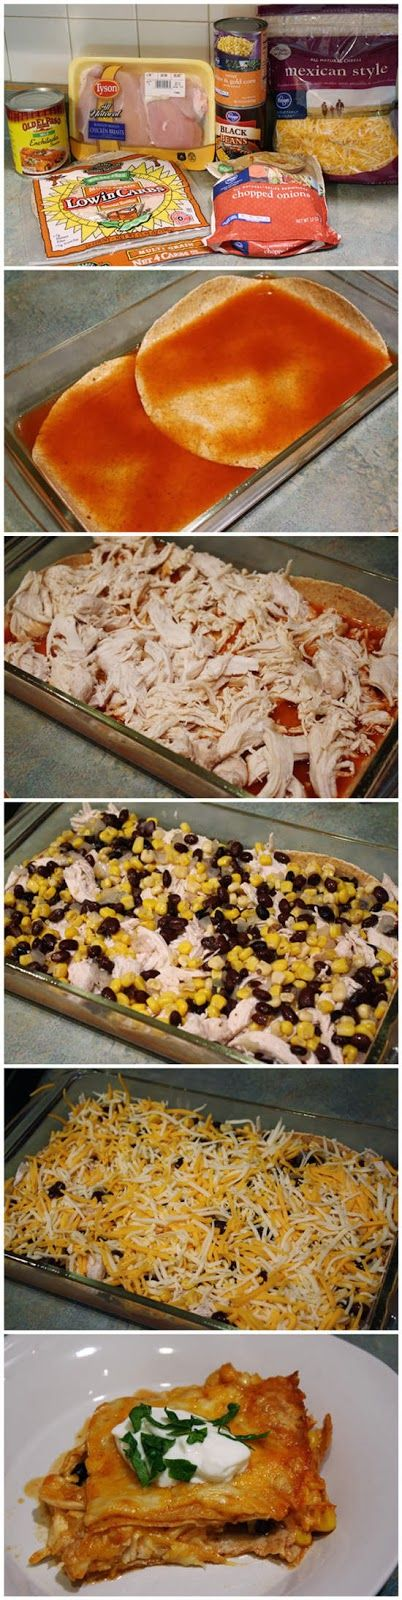 Skinny Chicken Enchilada Casserole. This was very tasty considering how simple it was to prepare.